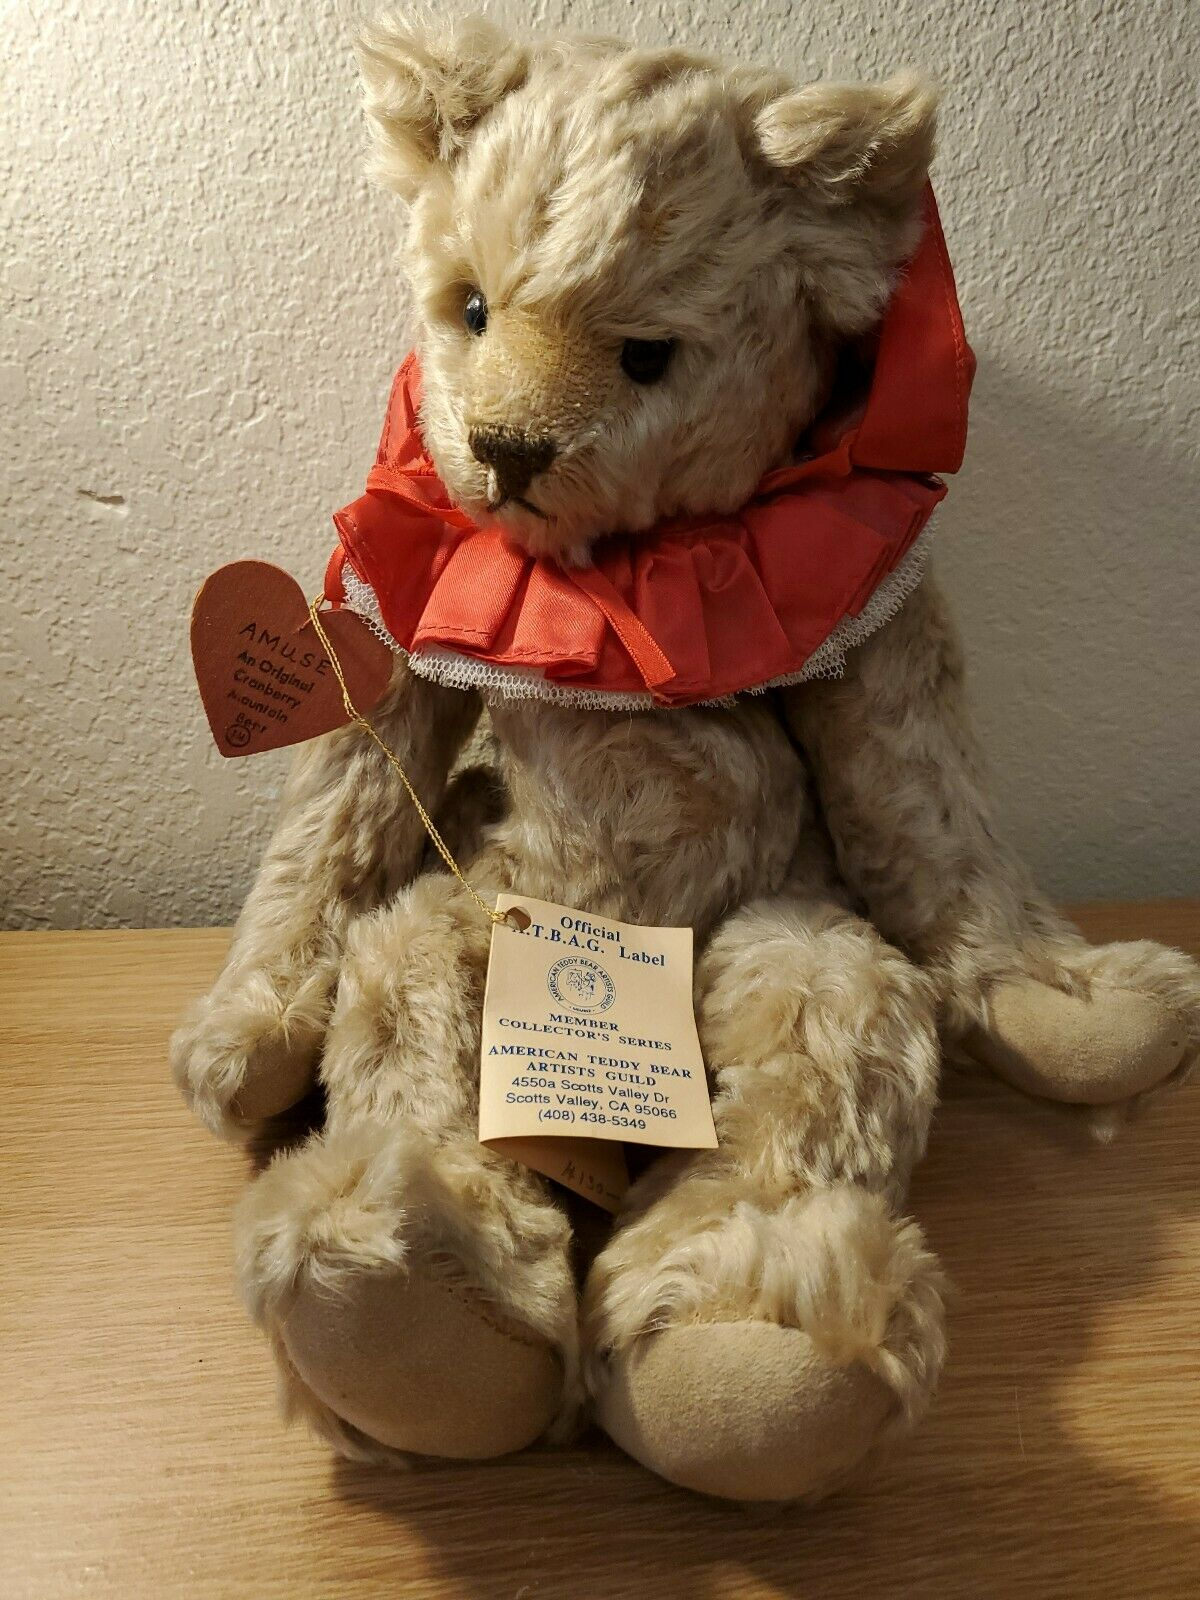 American Teddy orso Artists Guild LE 5 7 MOHAIR SWEDE PAWS 15in NWT 1989